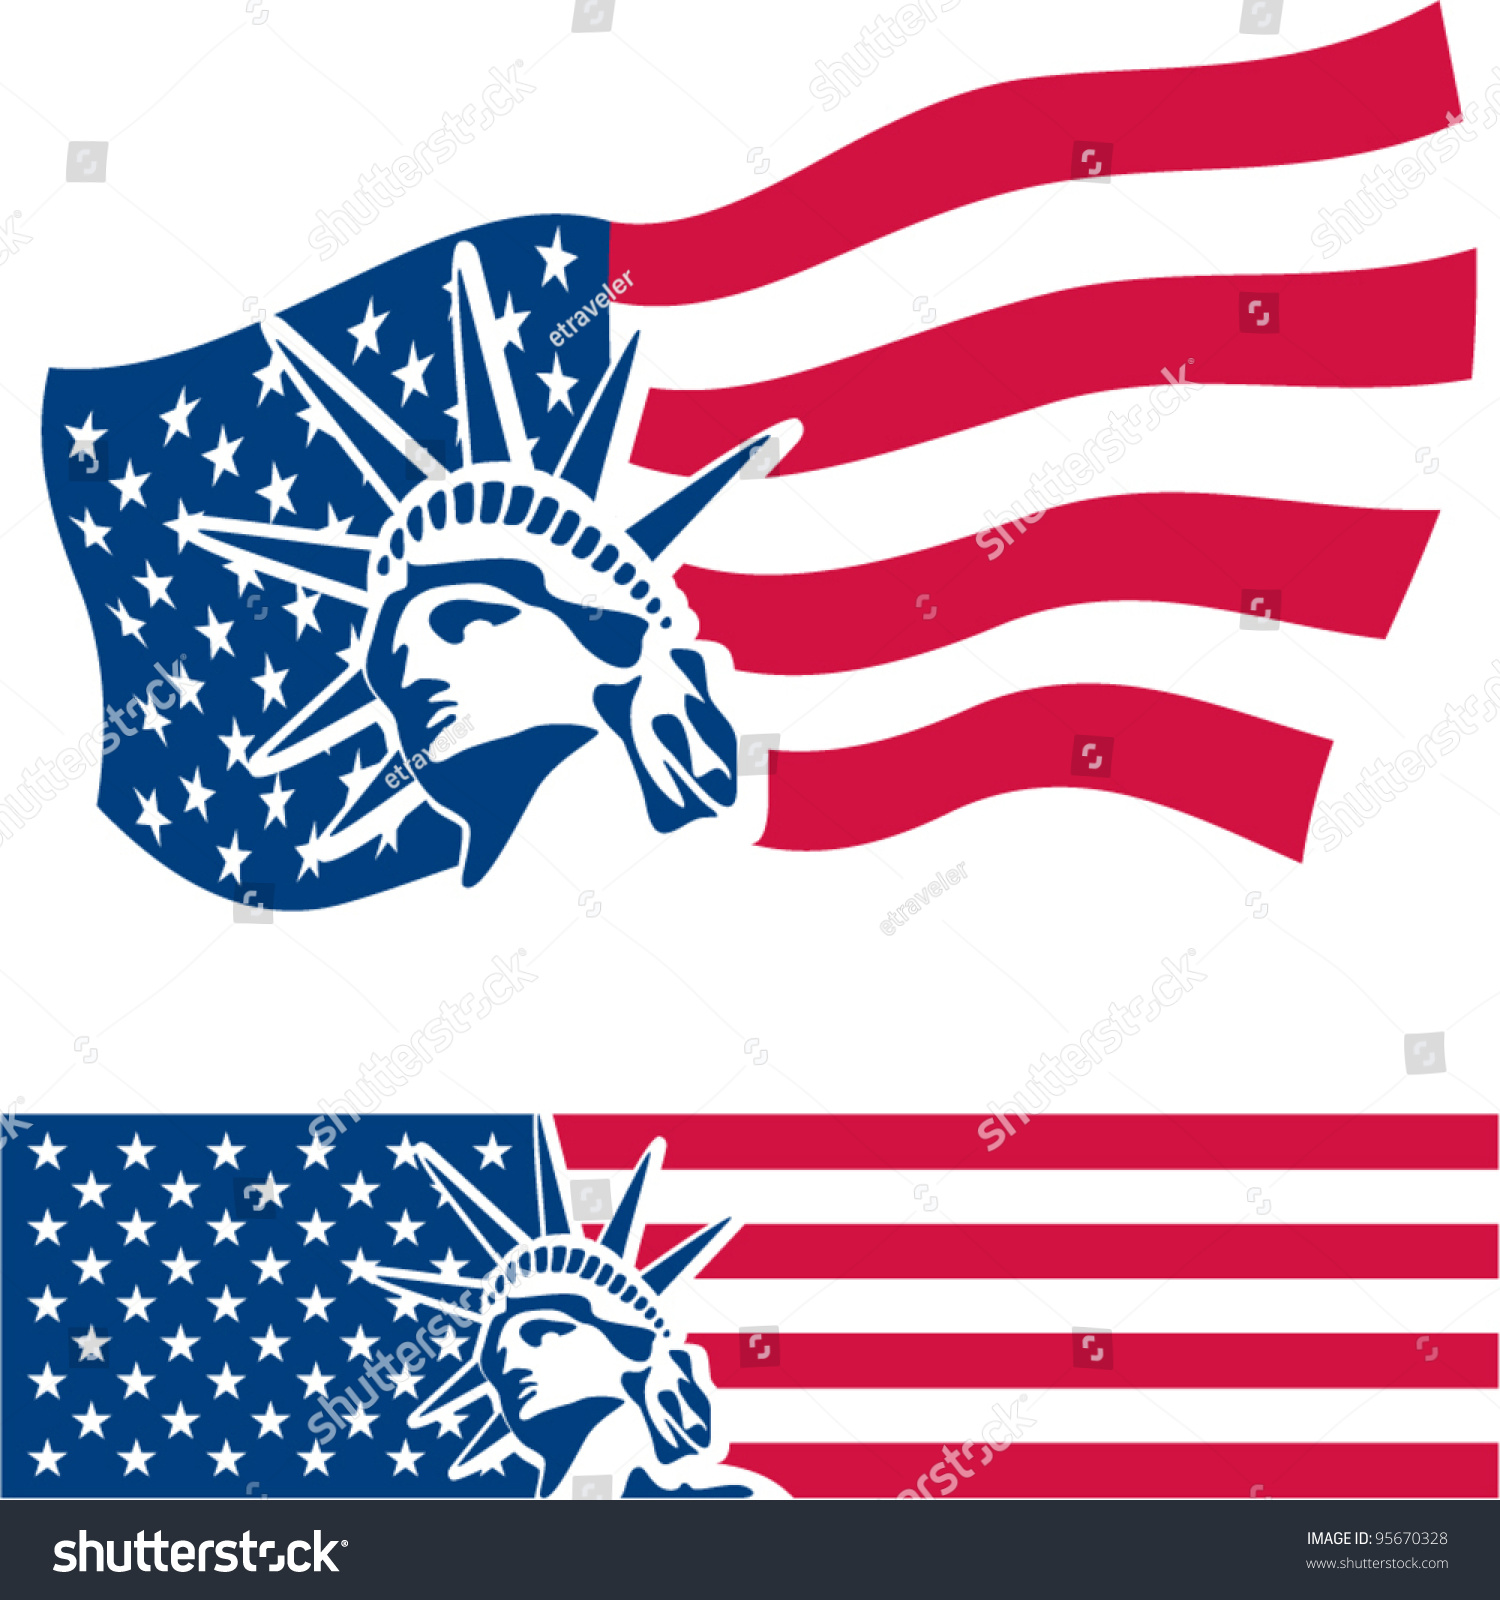 American Flag Symbol Image Collections Meaning Of Text Symbols